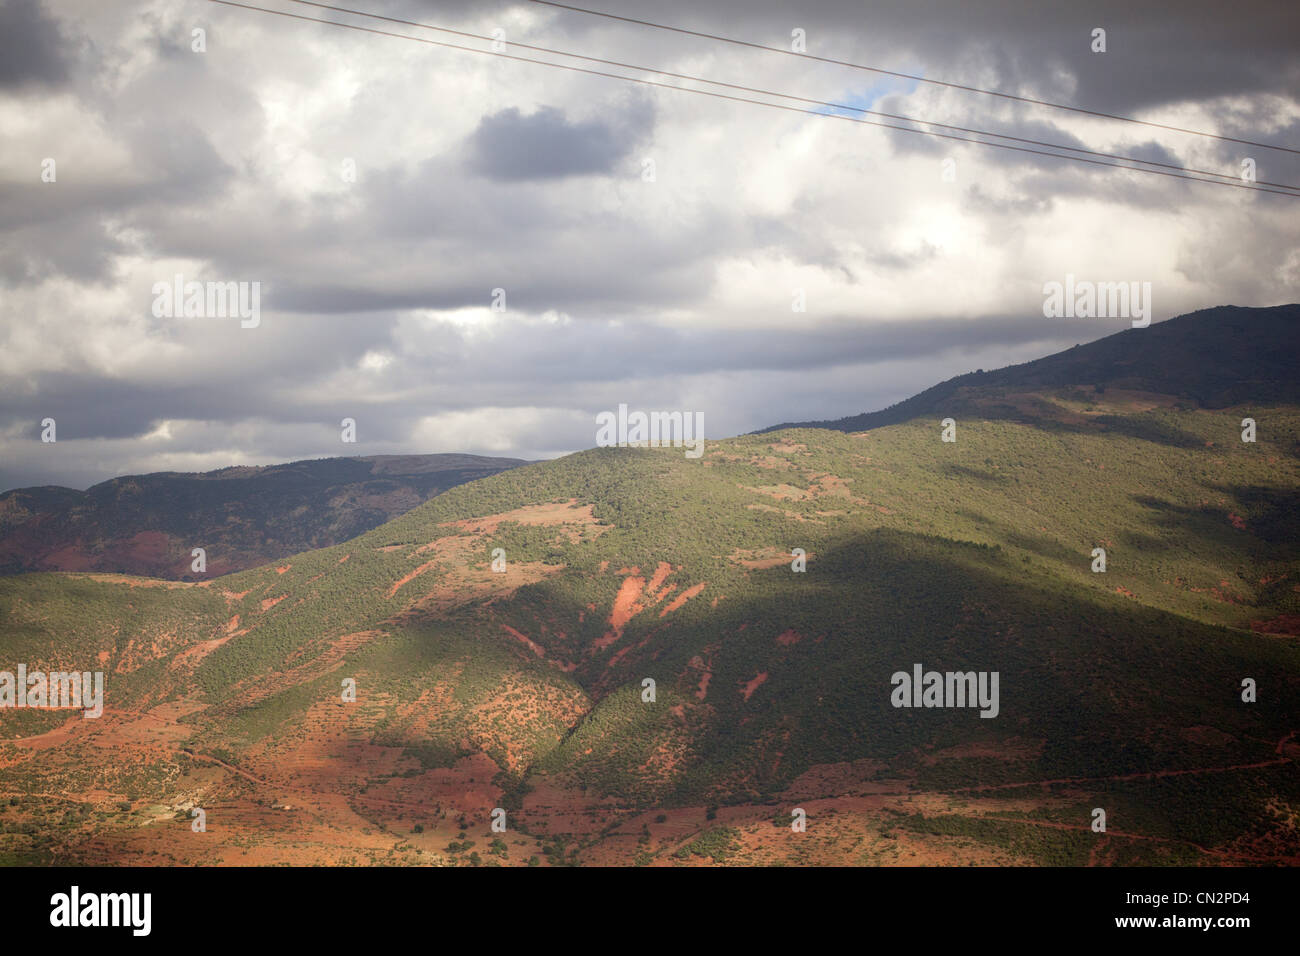 Mountain scenery, Morocco, North Africa - Stock Image